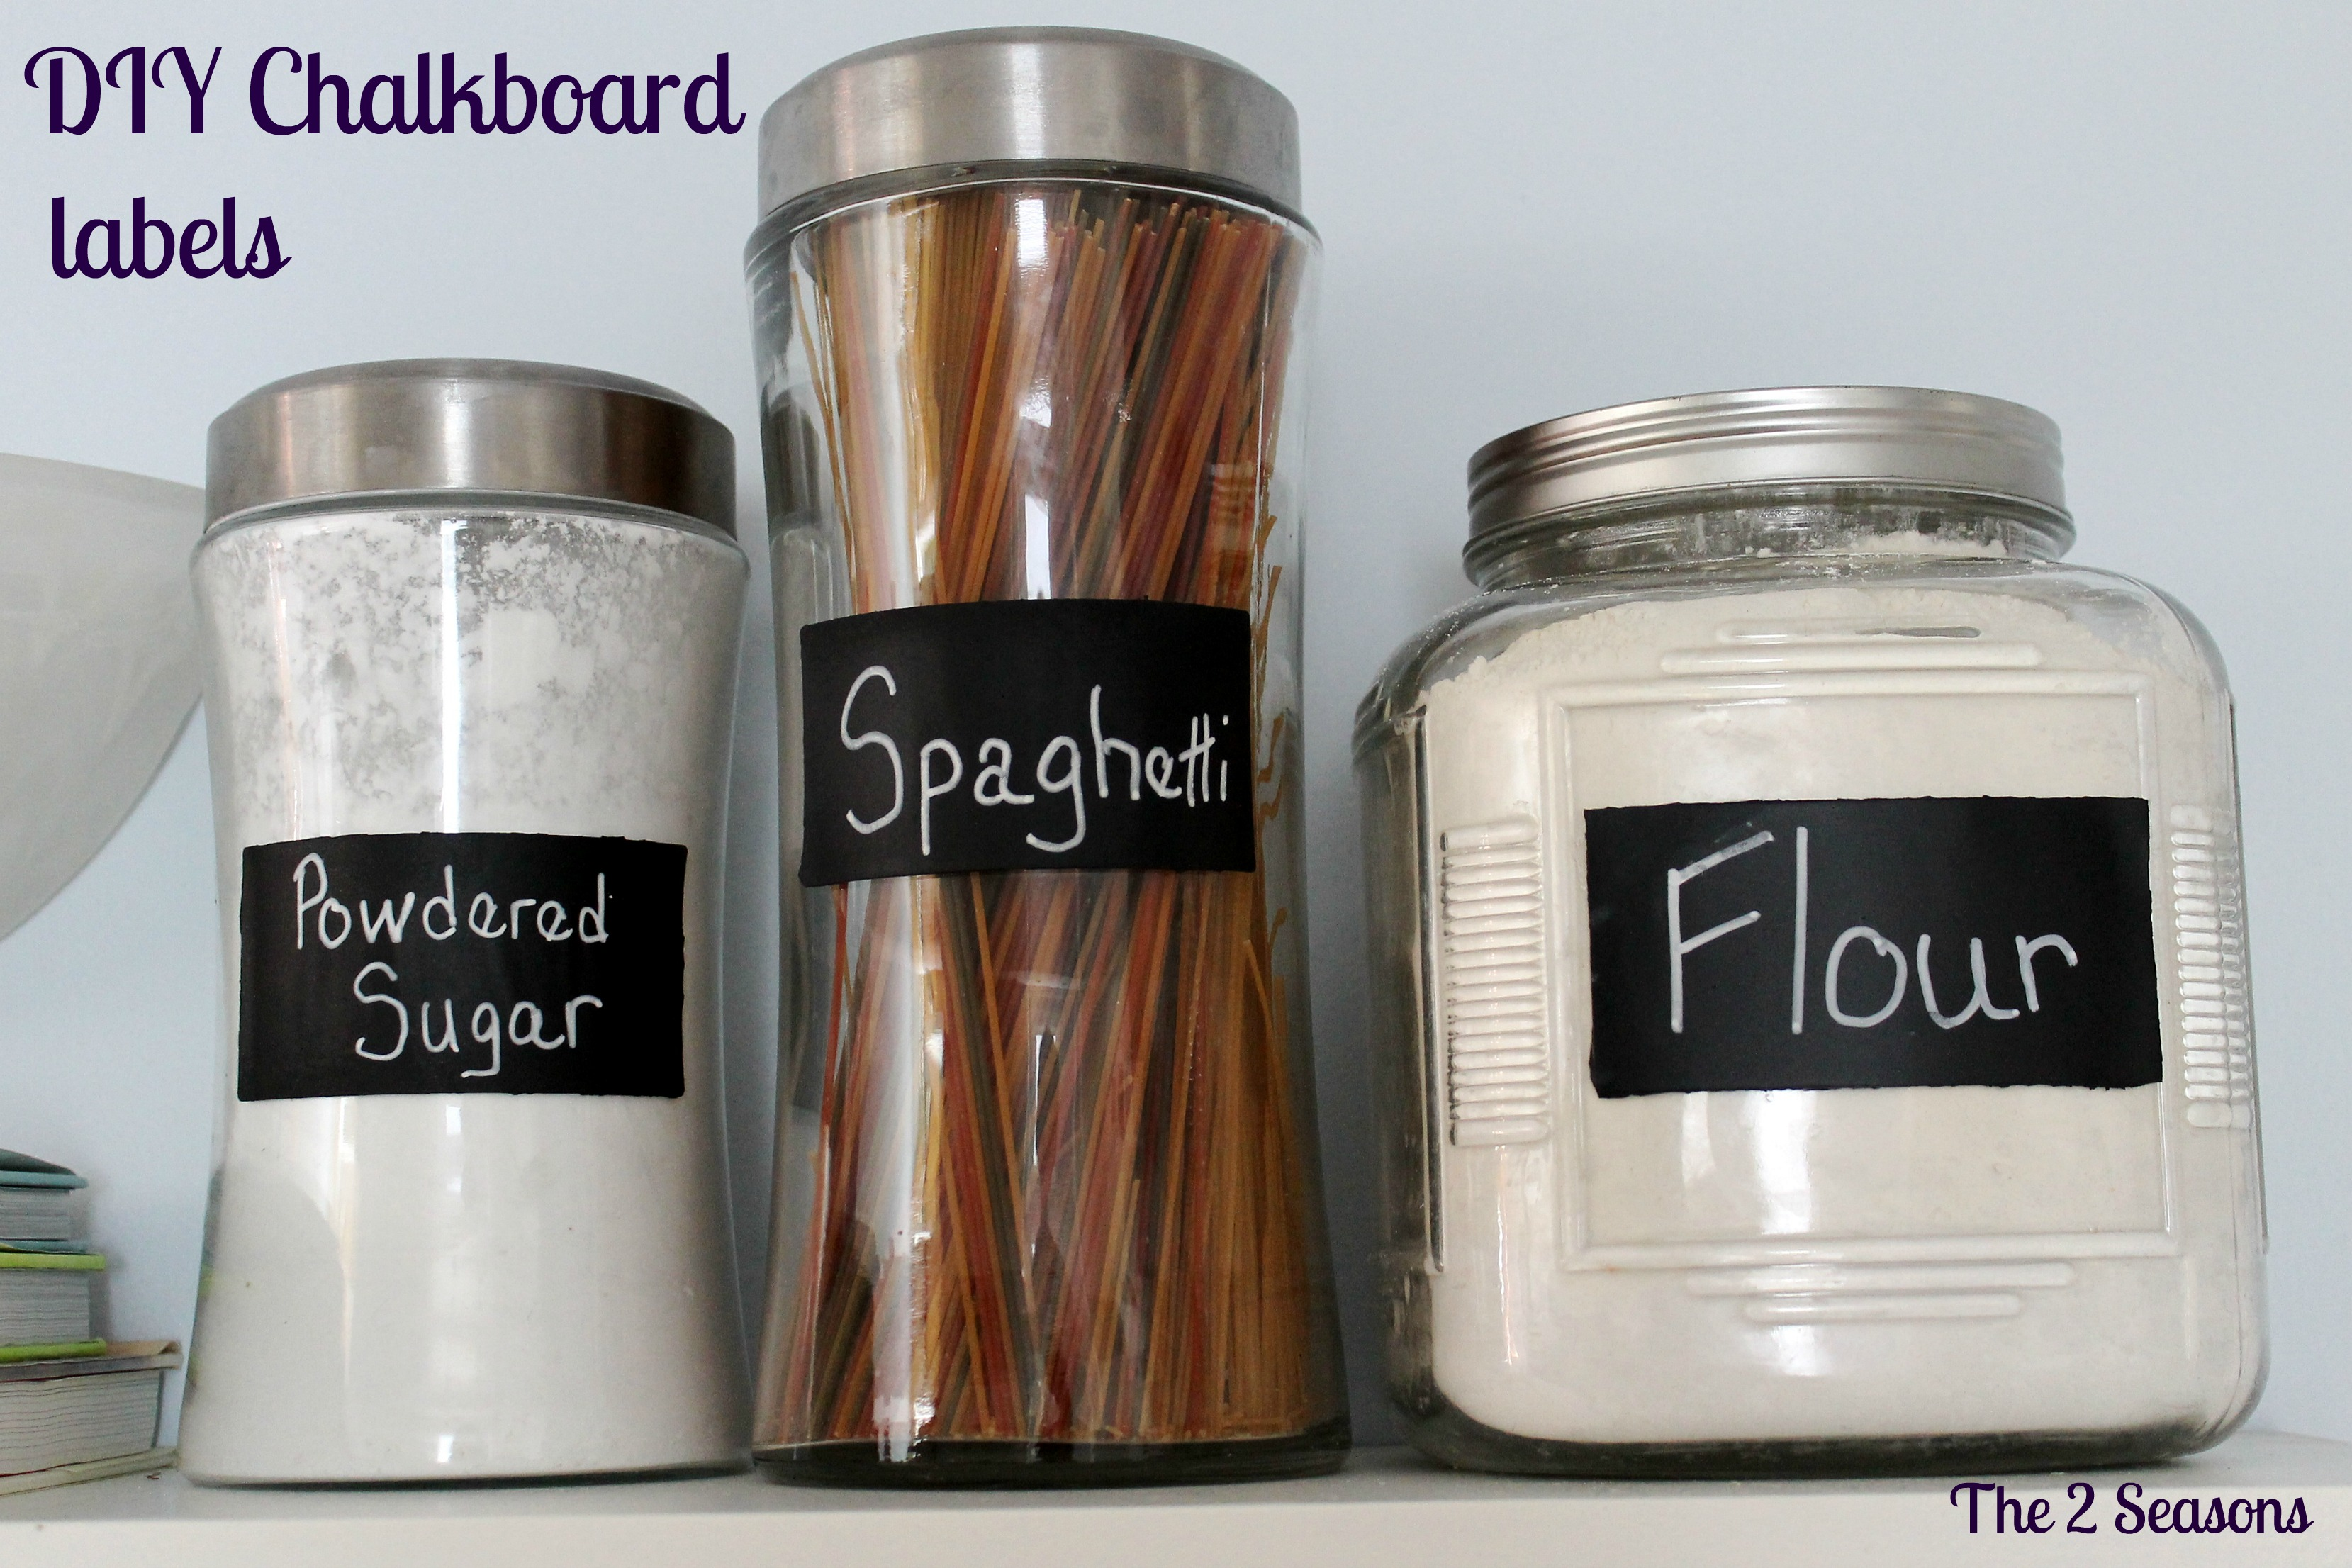 Labels New - DIY Chalkboard Kitchen  Labels